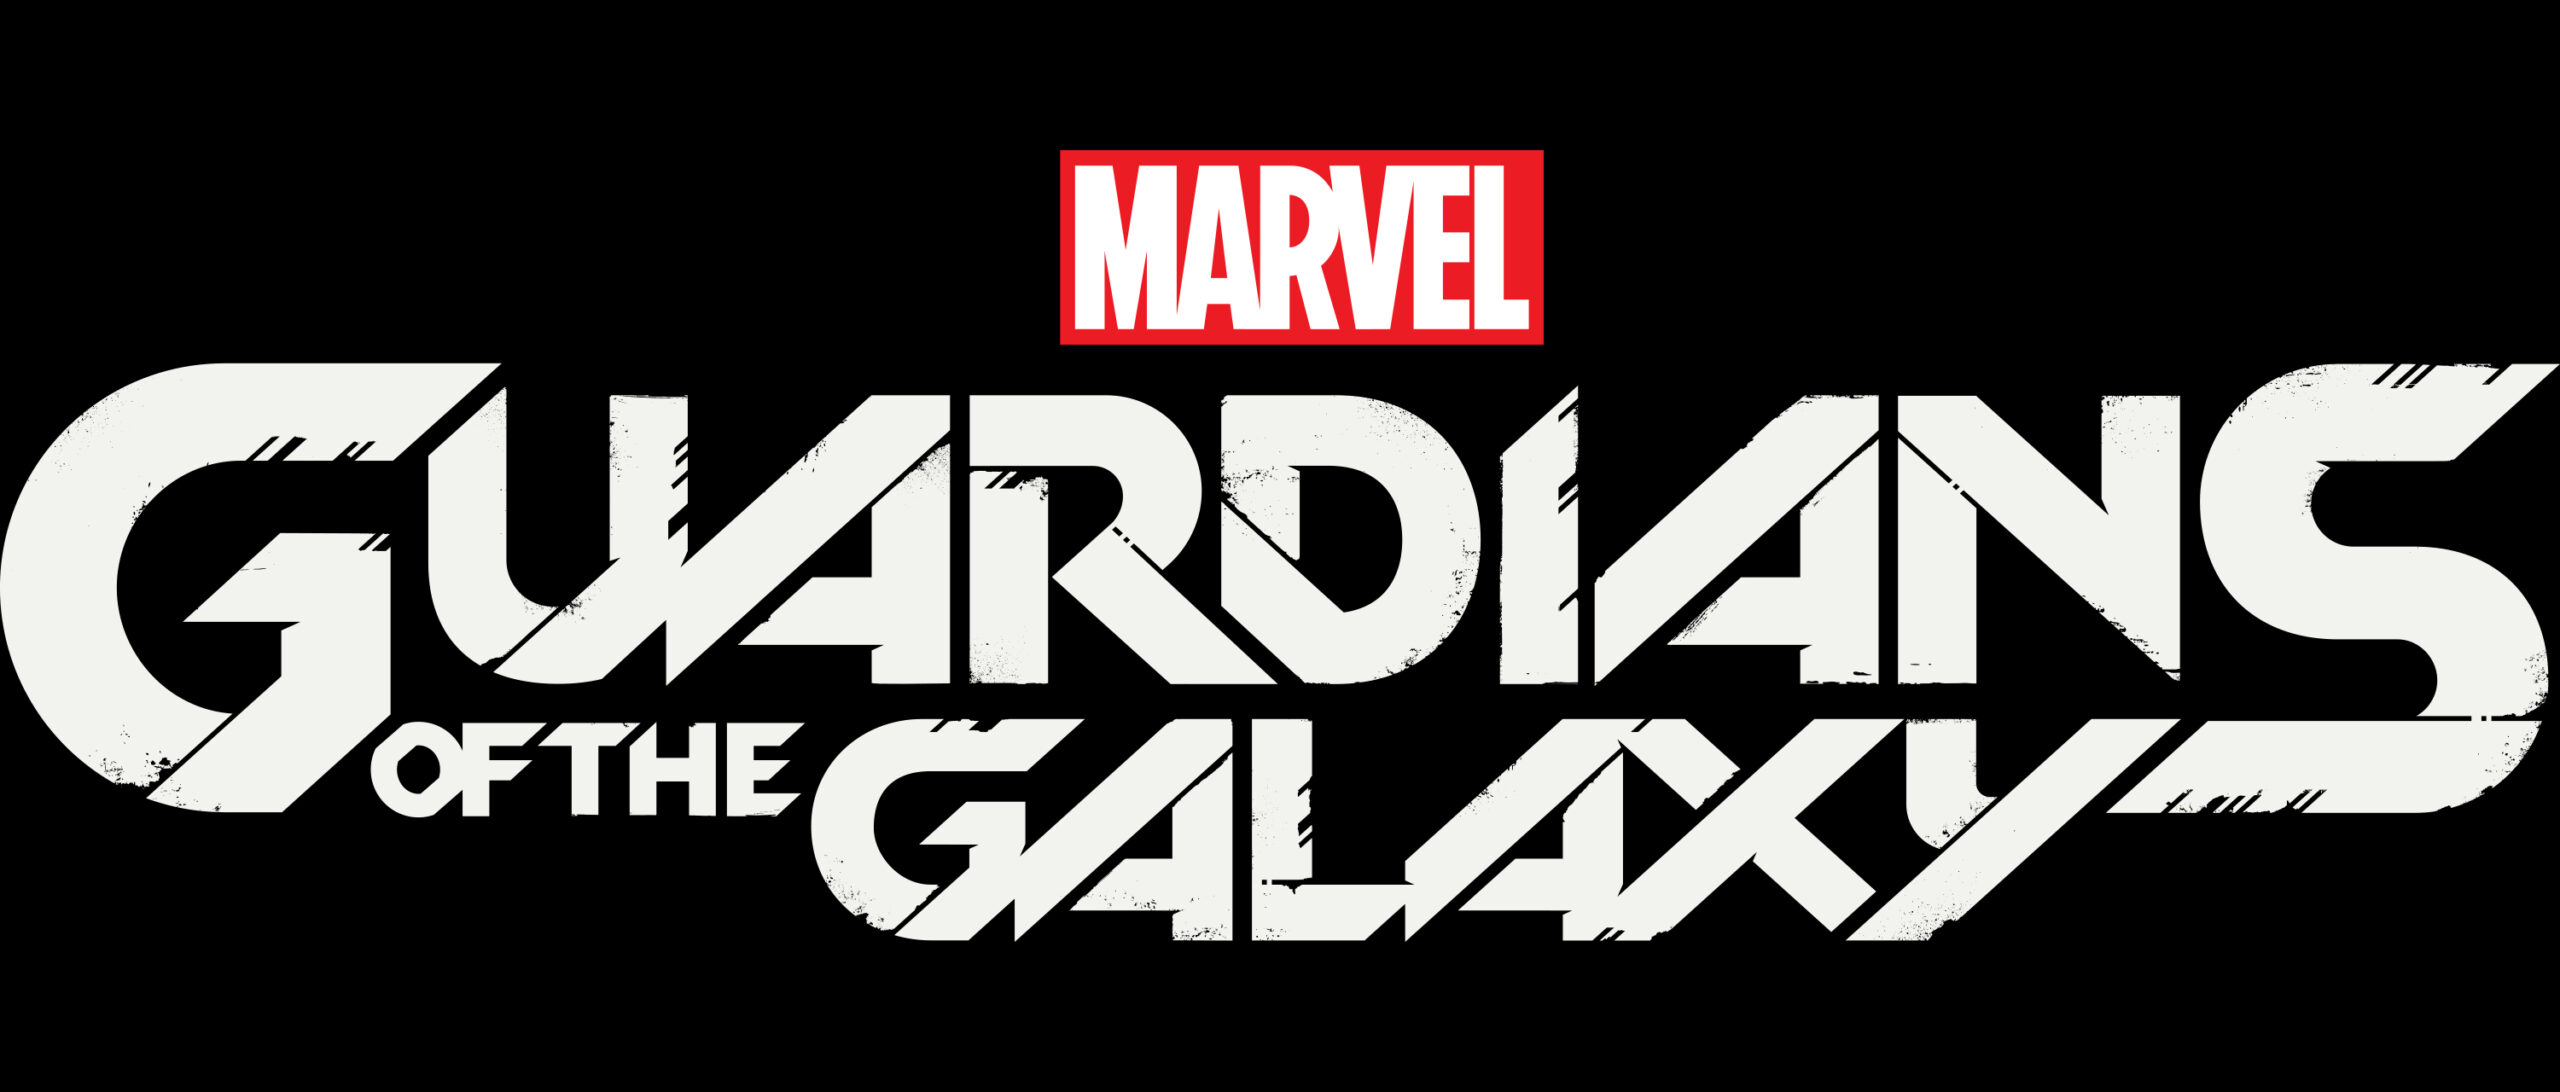 Marvel's Guardians of the Galaxy 14